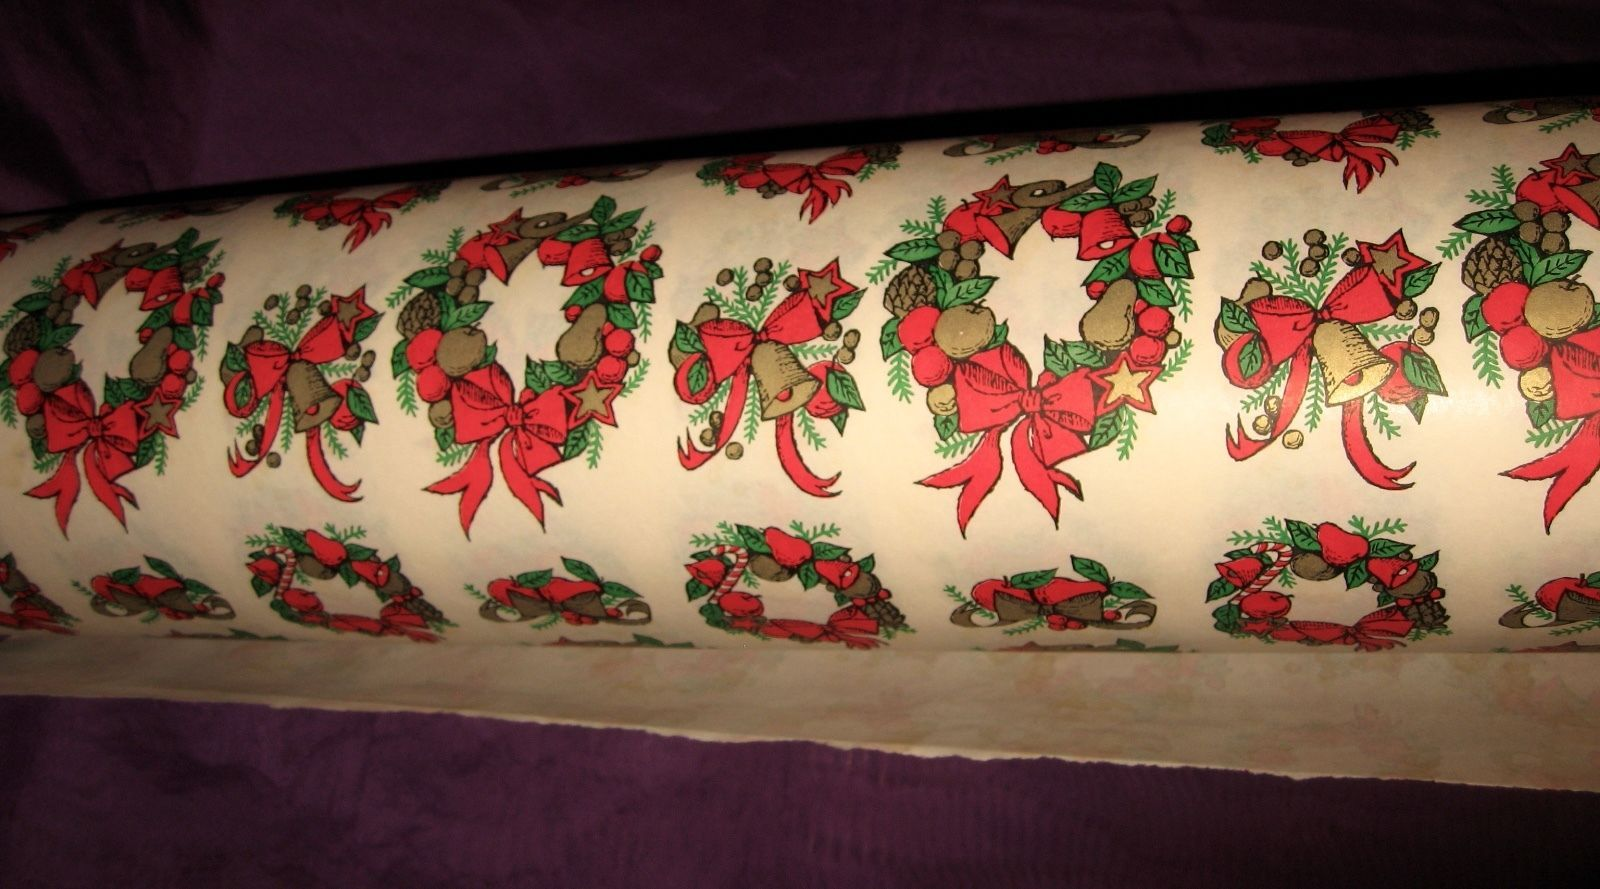 Vintage Dept Store Christmas Gift Wrapping Paper Large Roll Vintage Christmas Wrapping Paper Christmas Gift Wrapping Paper Christmas Gift Wrapping